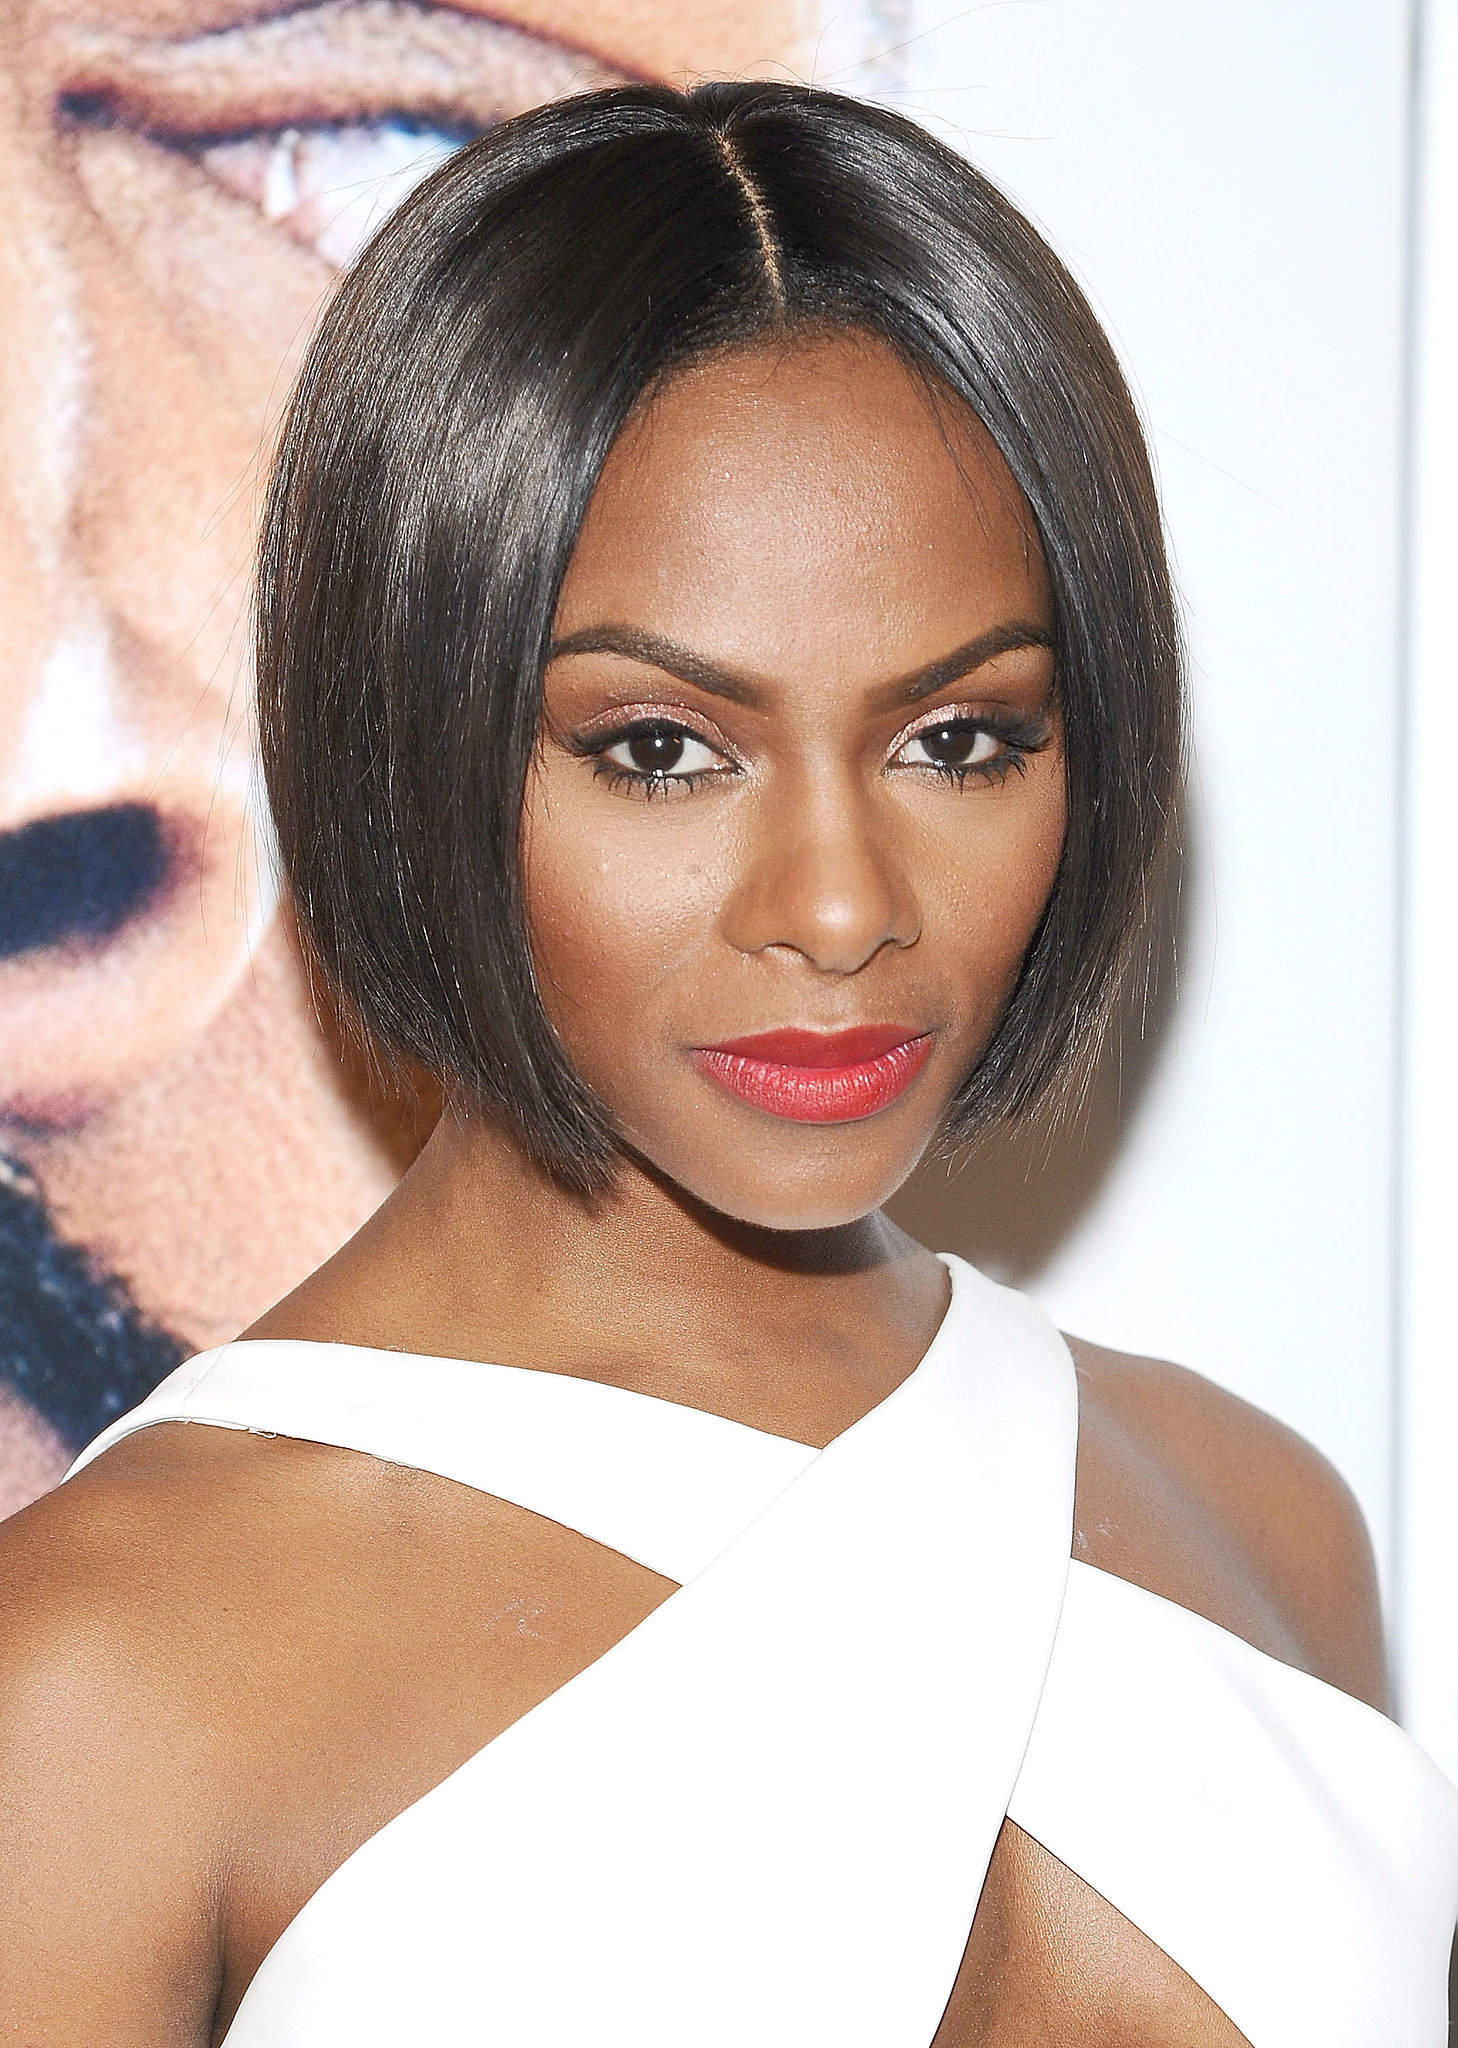 The 38-year old daughter of father (?) and mother(?), 172 cm tall Tika Sumpter in 2018 photo